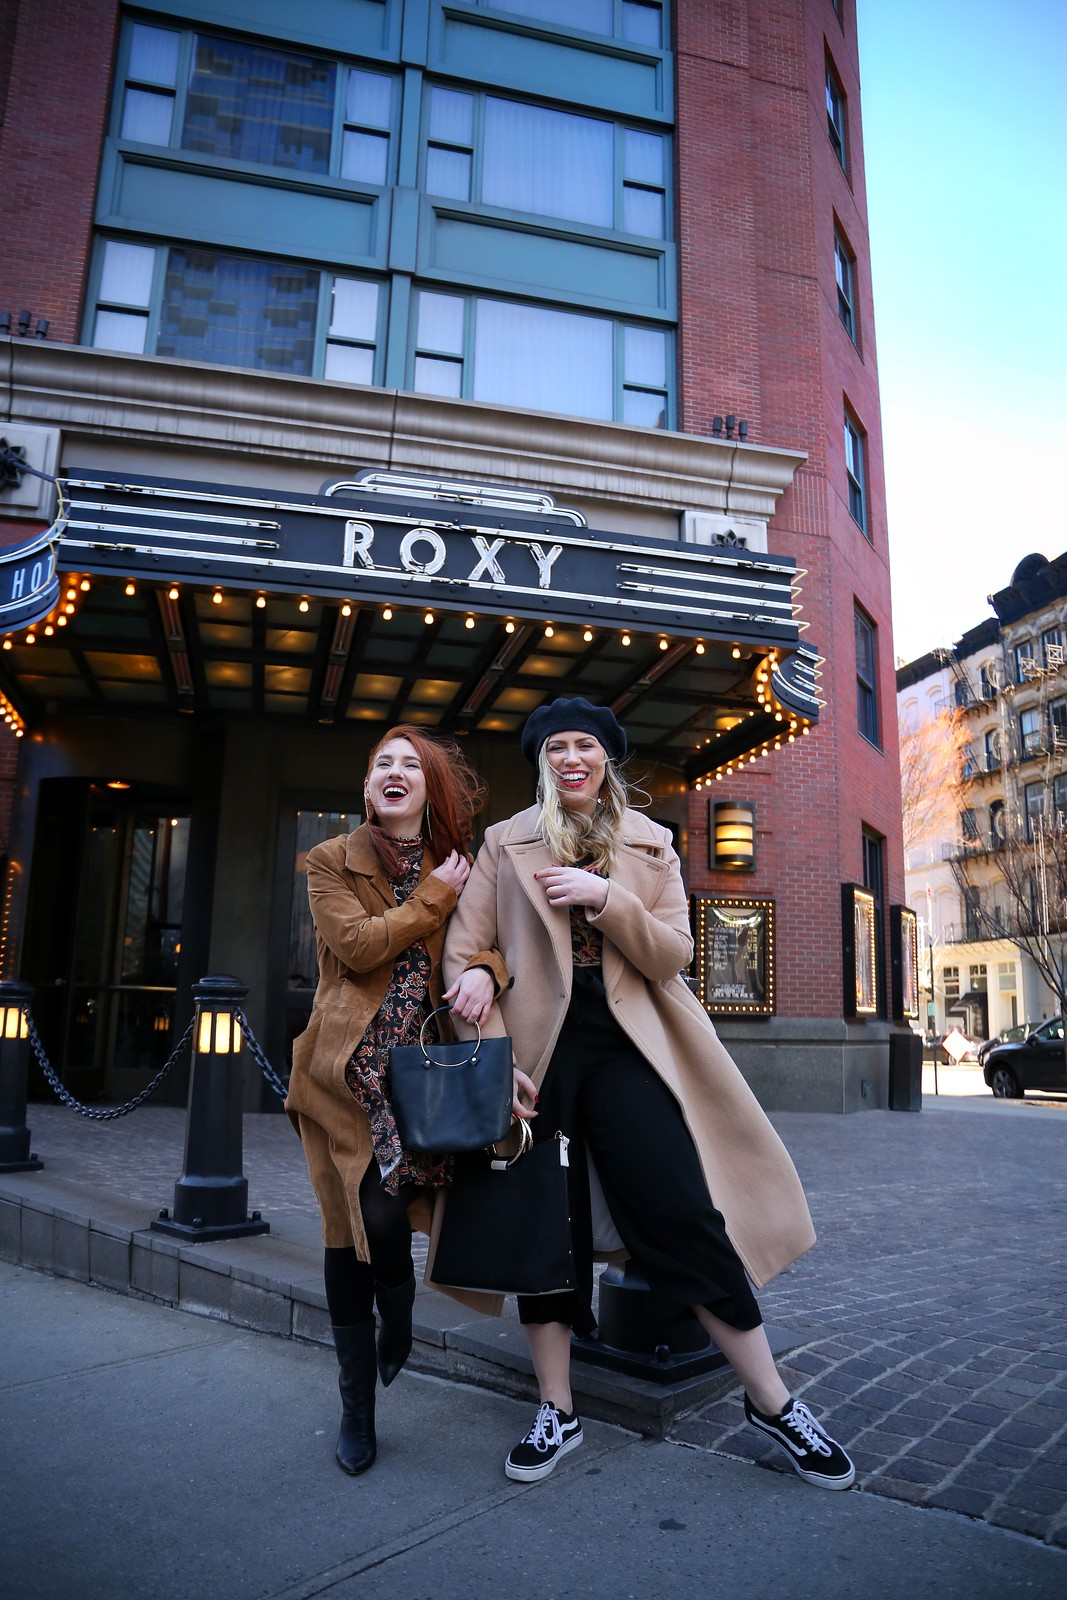 NYC Fashion Bloggers ASOS Paisley Print Winter Outfits Roxy Hotel Tribeca